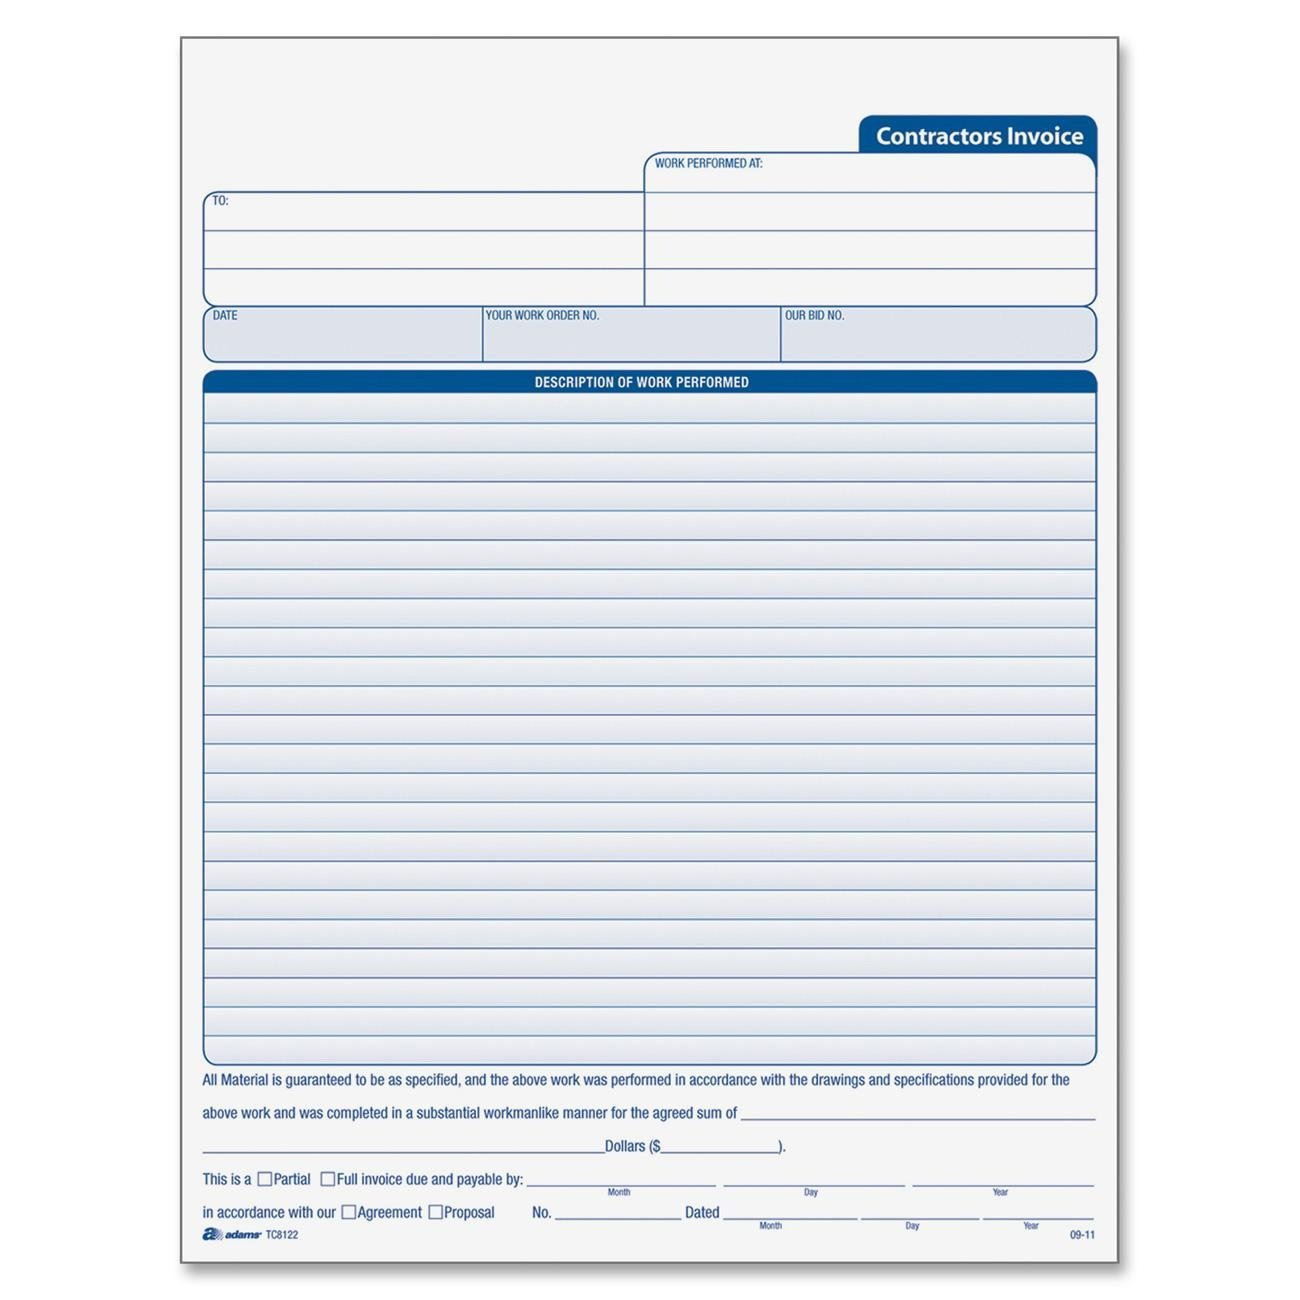 Best Rated In Sales Forms Invoice Forms Helpful Customer Reviews - Handyman invoice template pdf online antique store